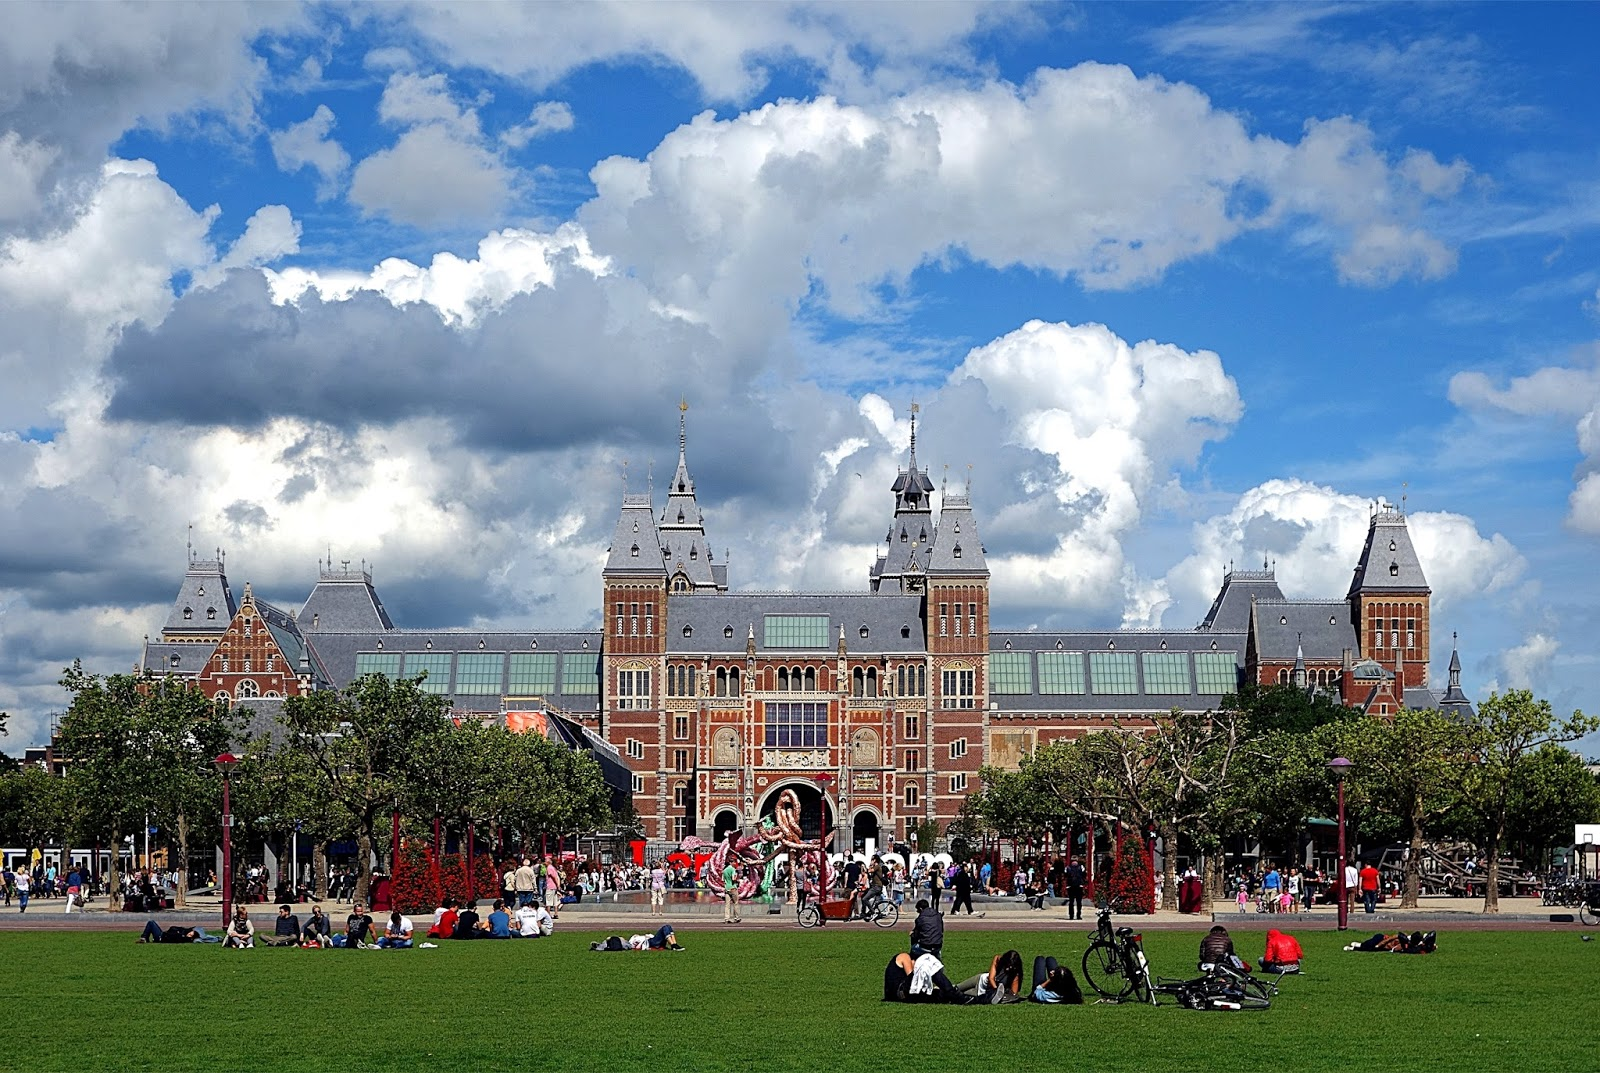 These Are The 25 Best Museums In The World - Rijksmuseum